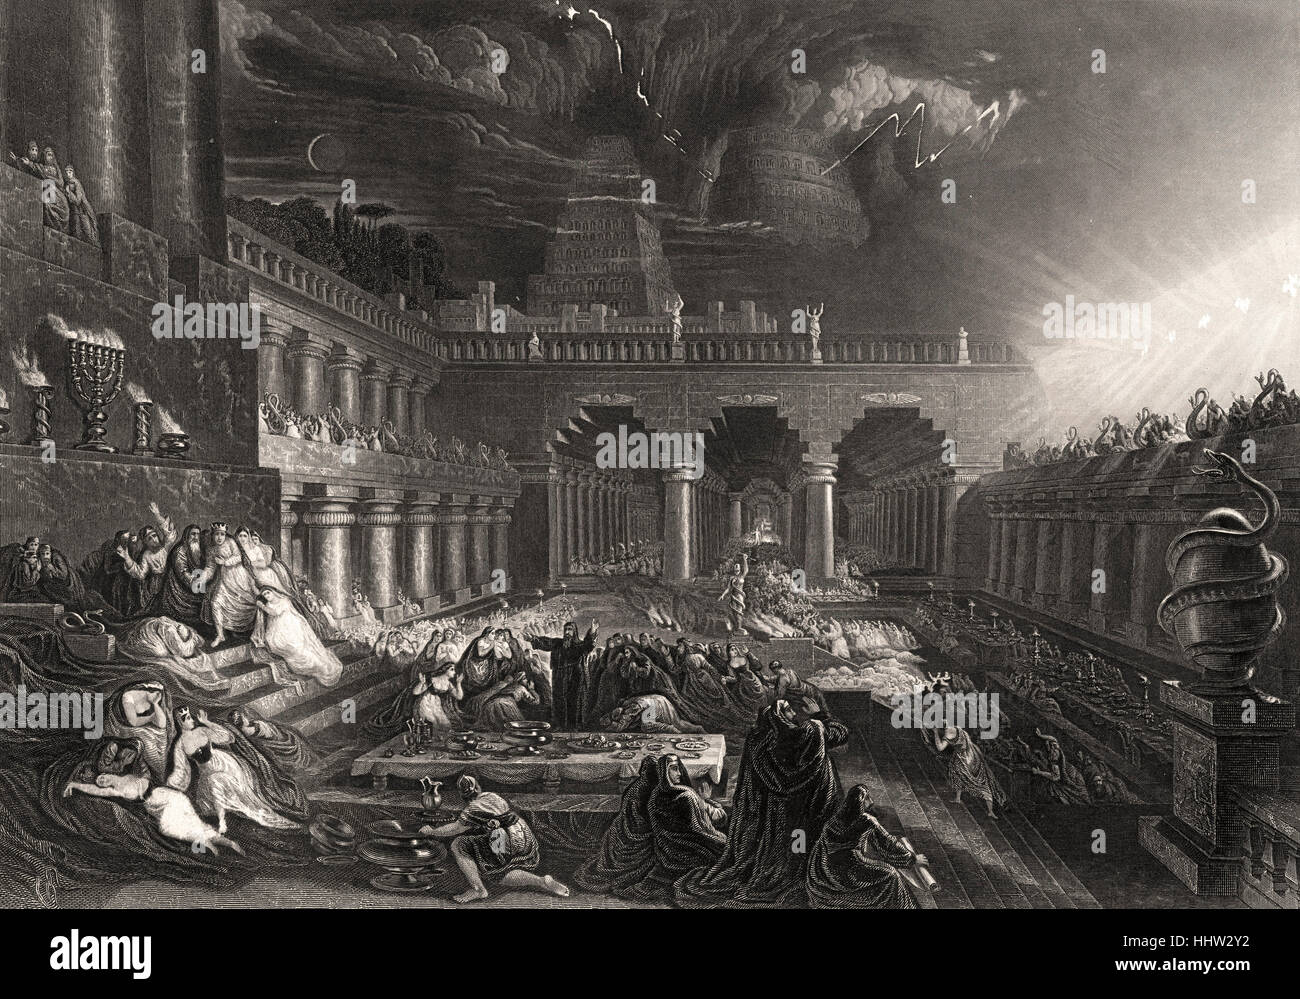 Belshazzar's Feast, Daniel interprets the writing on the wall - Daniel chapter 5 verse 25: 'And this is - Stock Image